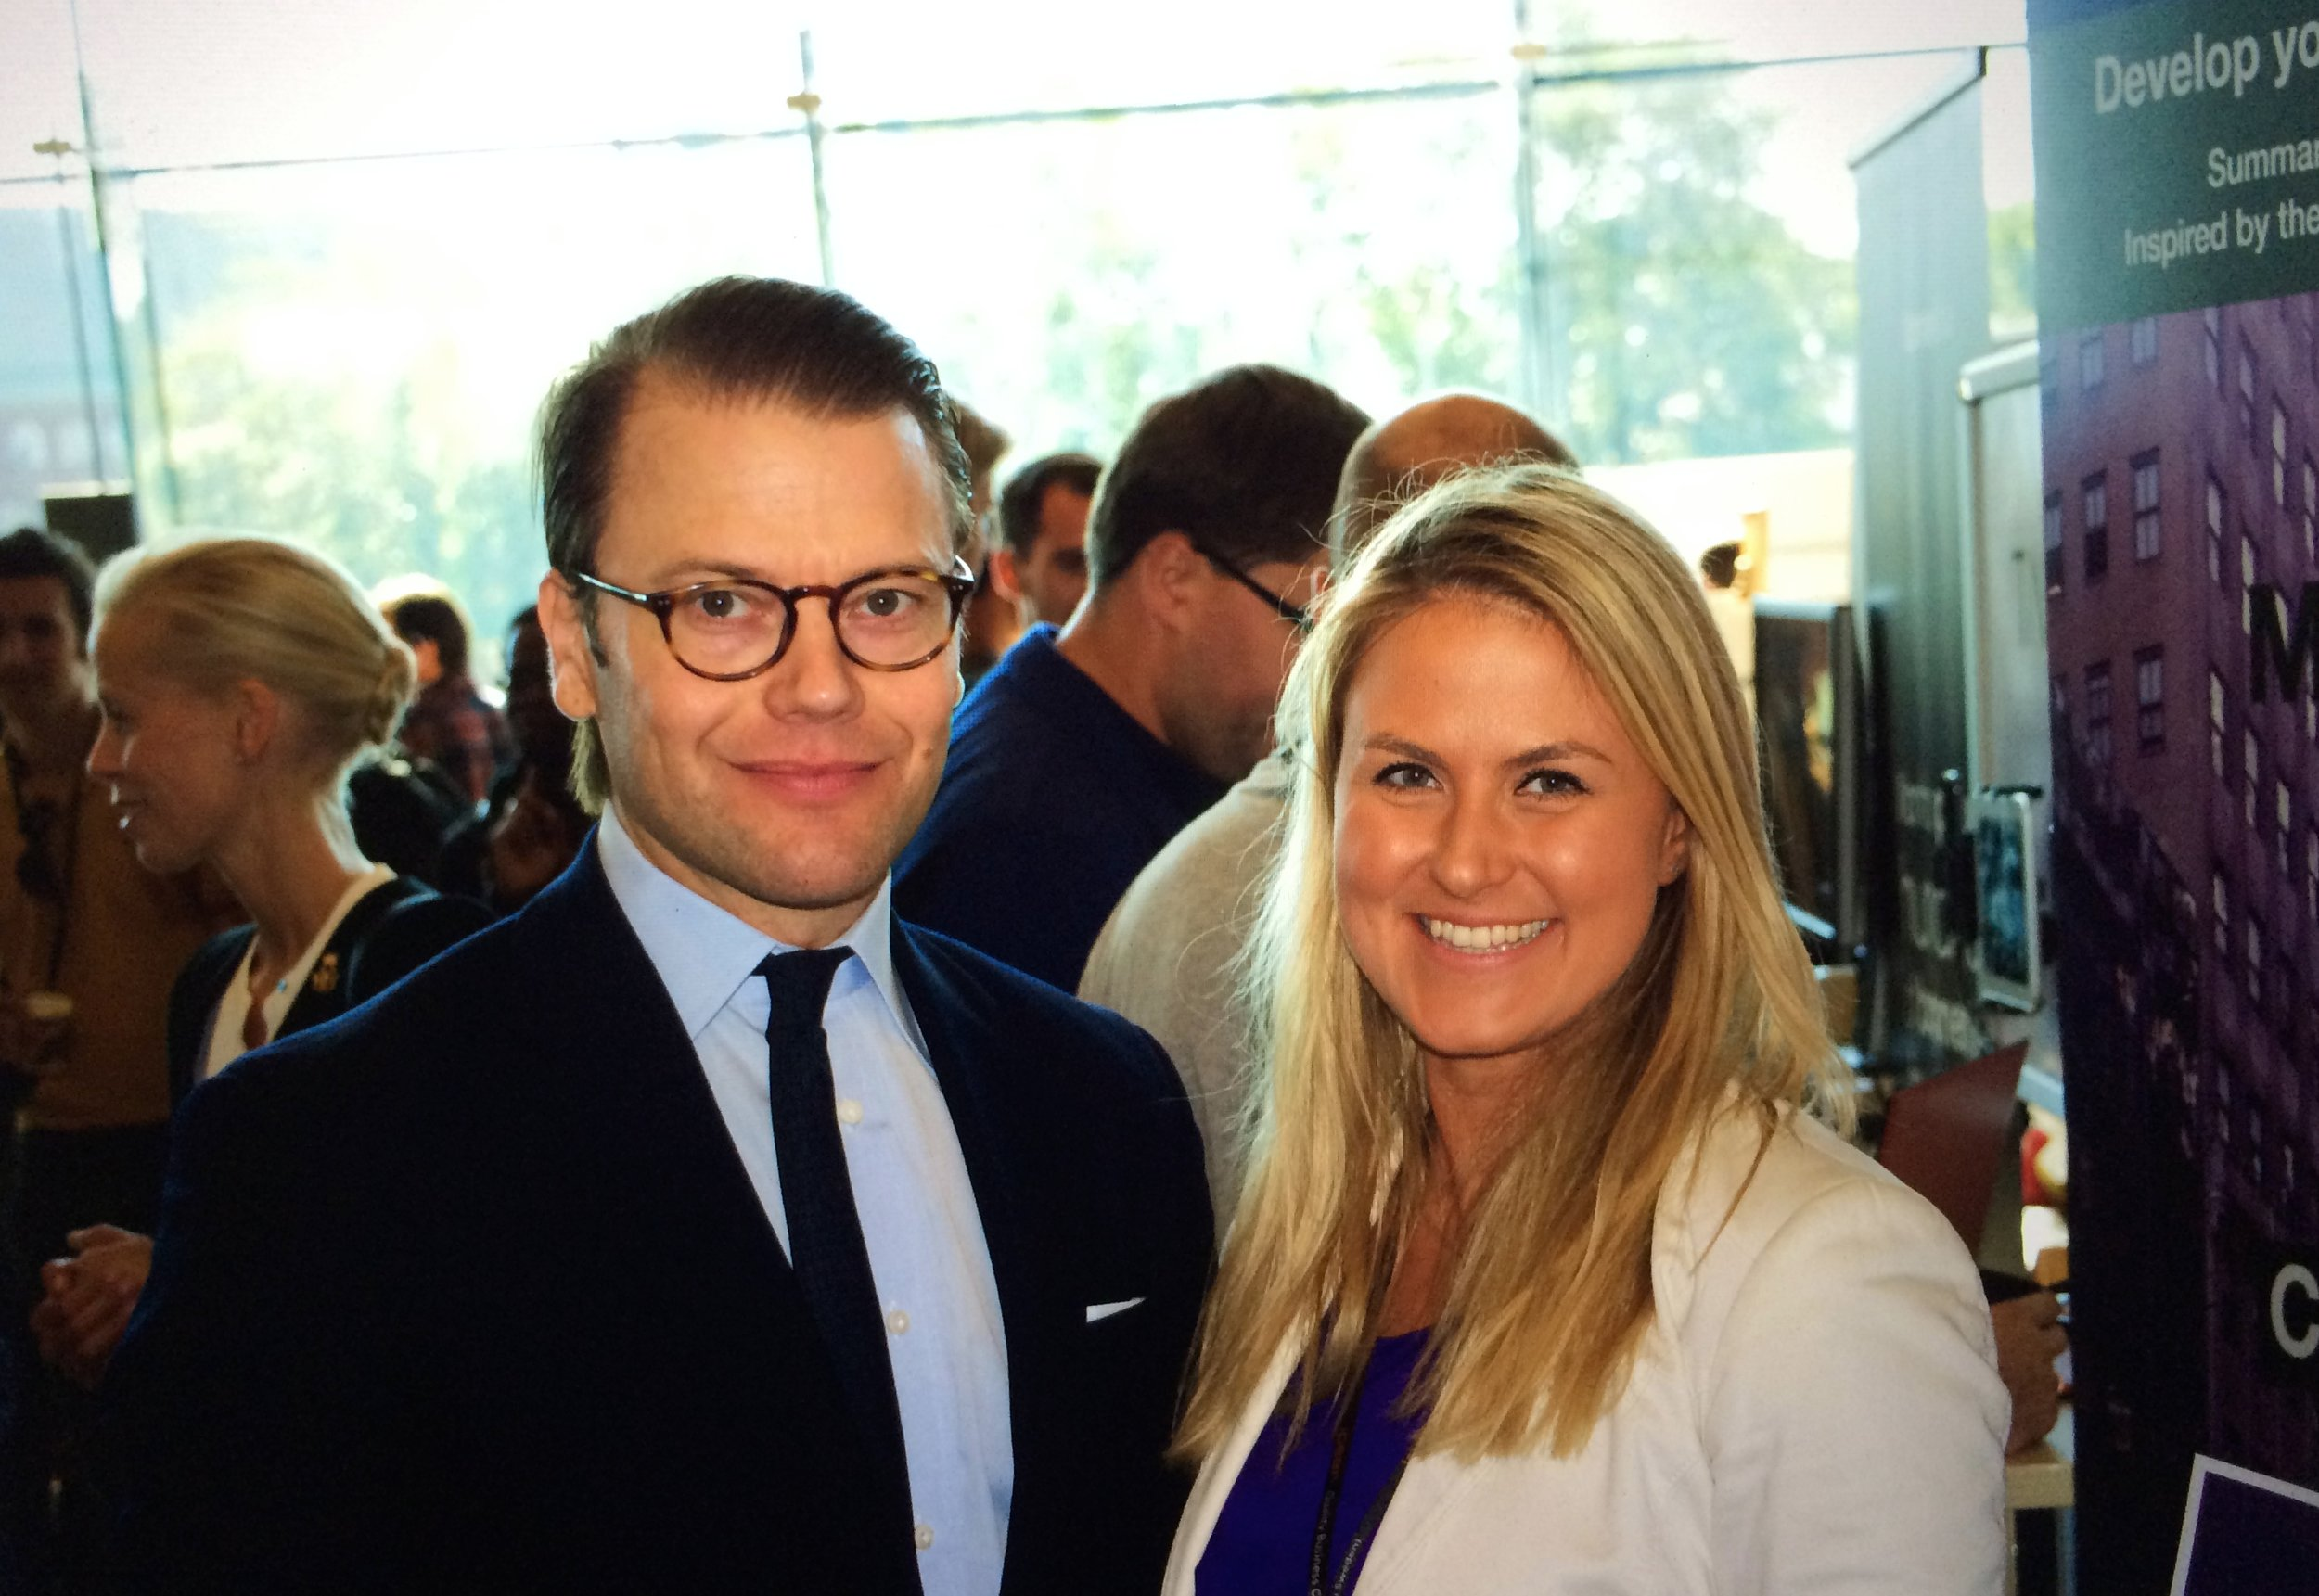 Honored to speak to Prince Daniel of Sweden about the future of entrepreneurship.